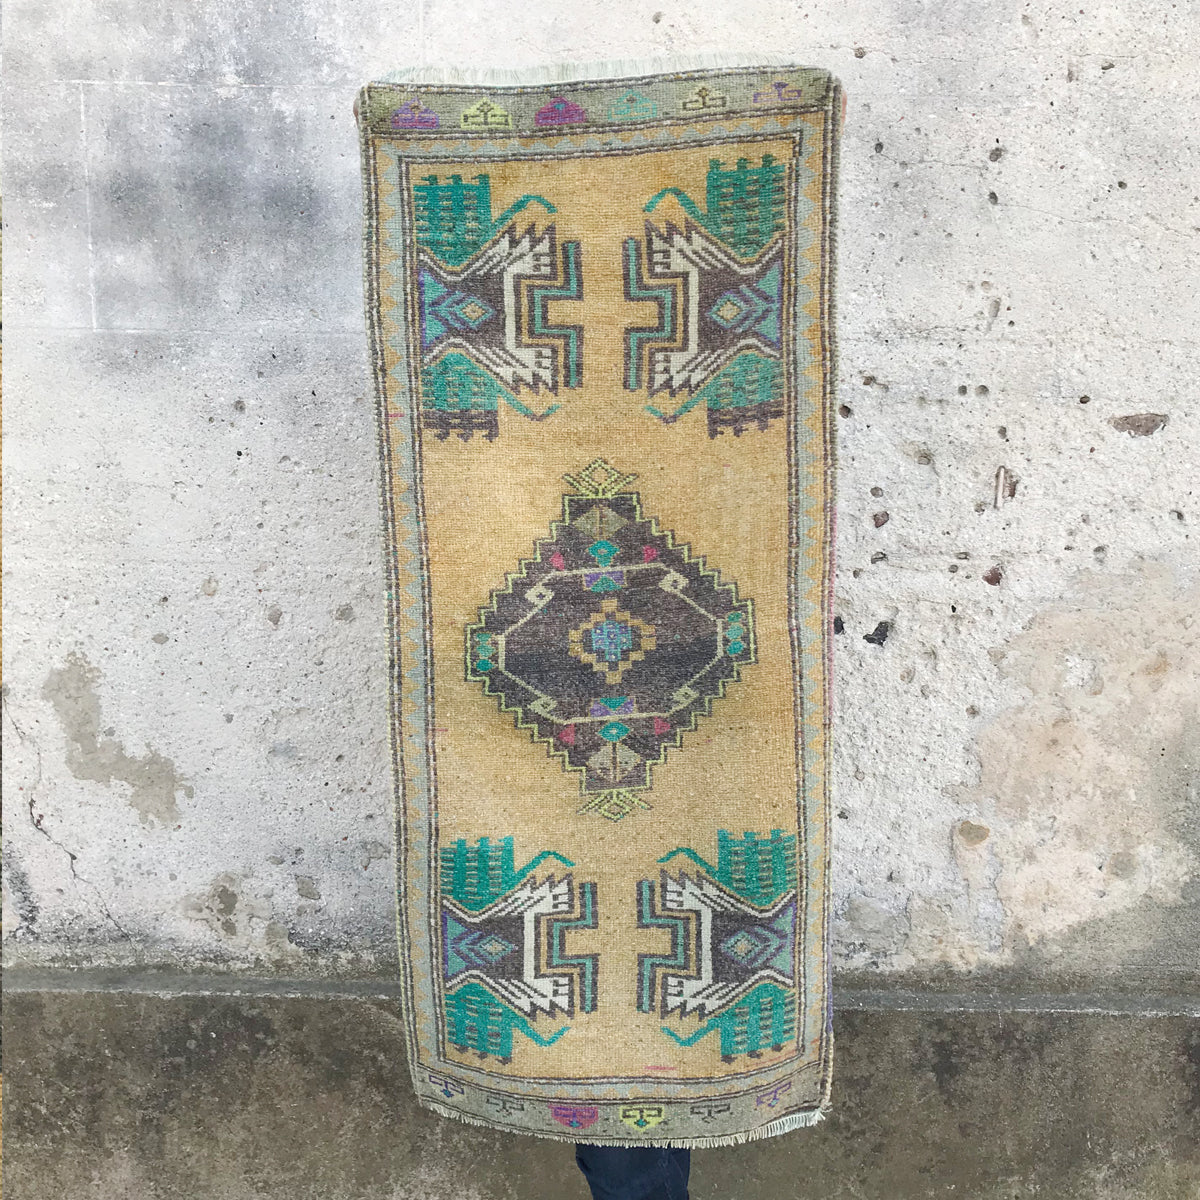 This small handwoven vintage Turkish rug has a beautiful teals, yellow, grays and purples.  Extra long for a small rug! Great for entryways, bathrooms, kitchens and layering. 20x47 inches.